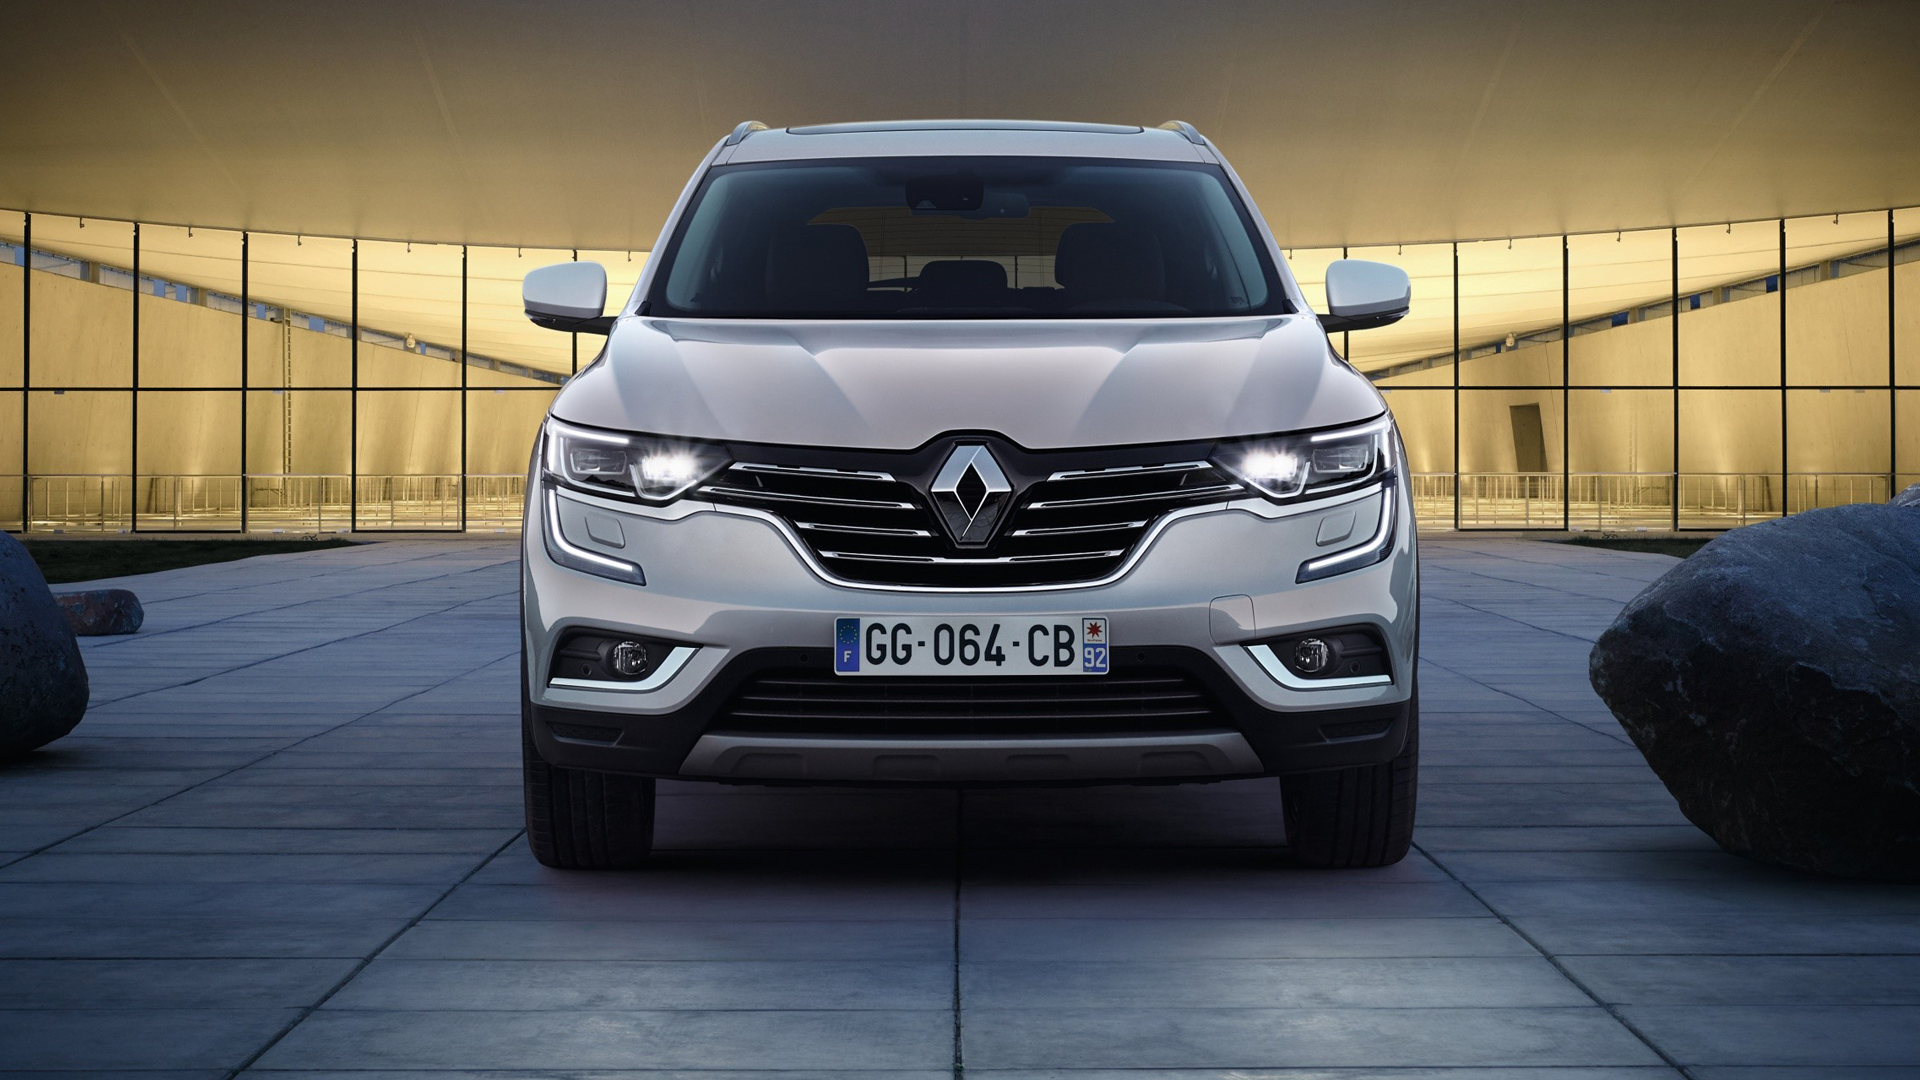 Renault Koleos - 2016 - front light